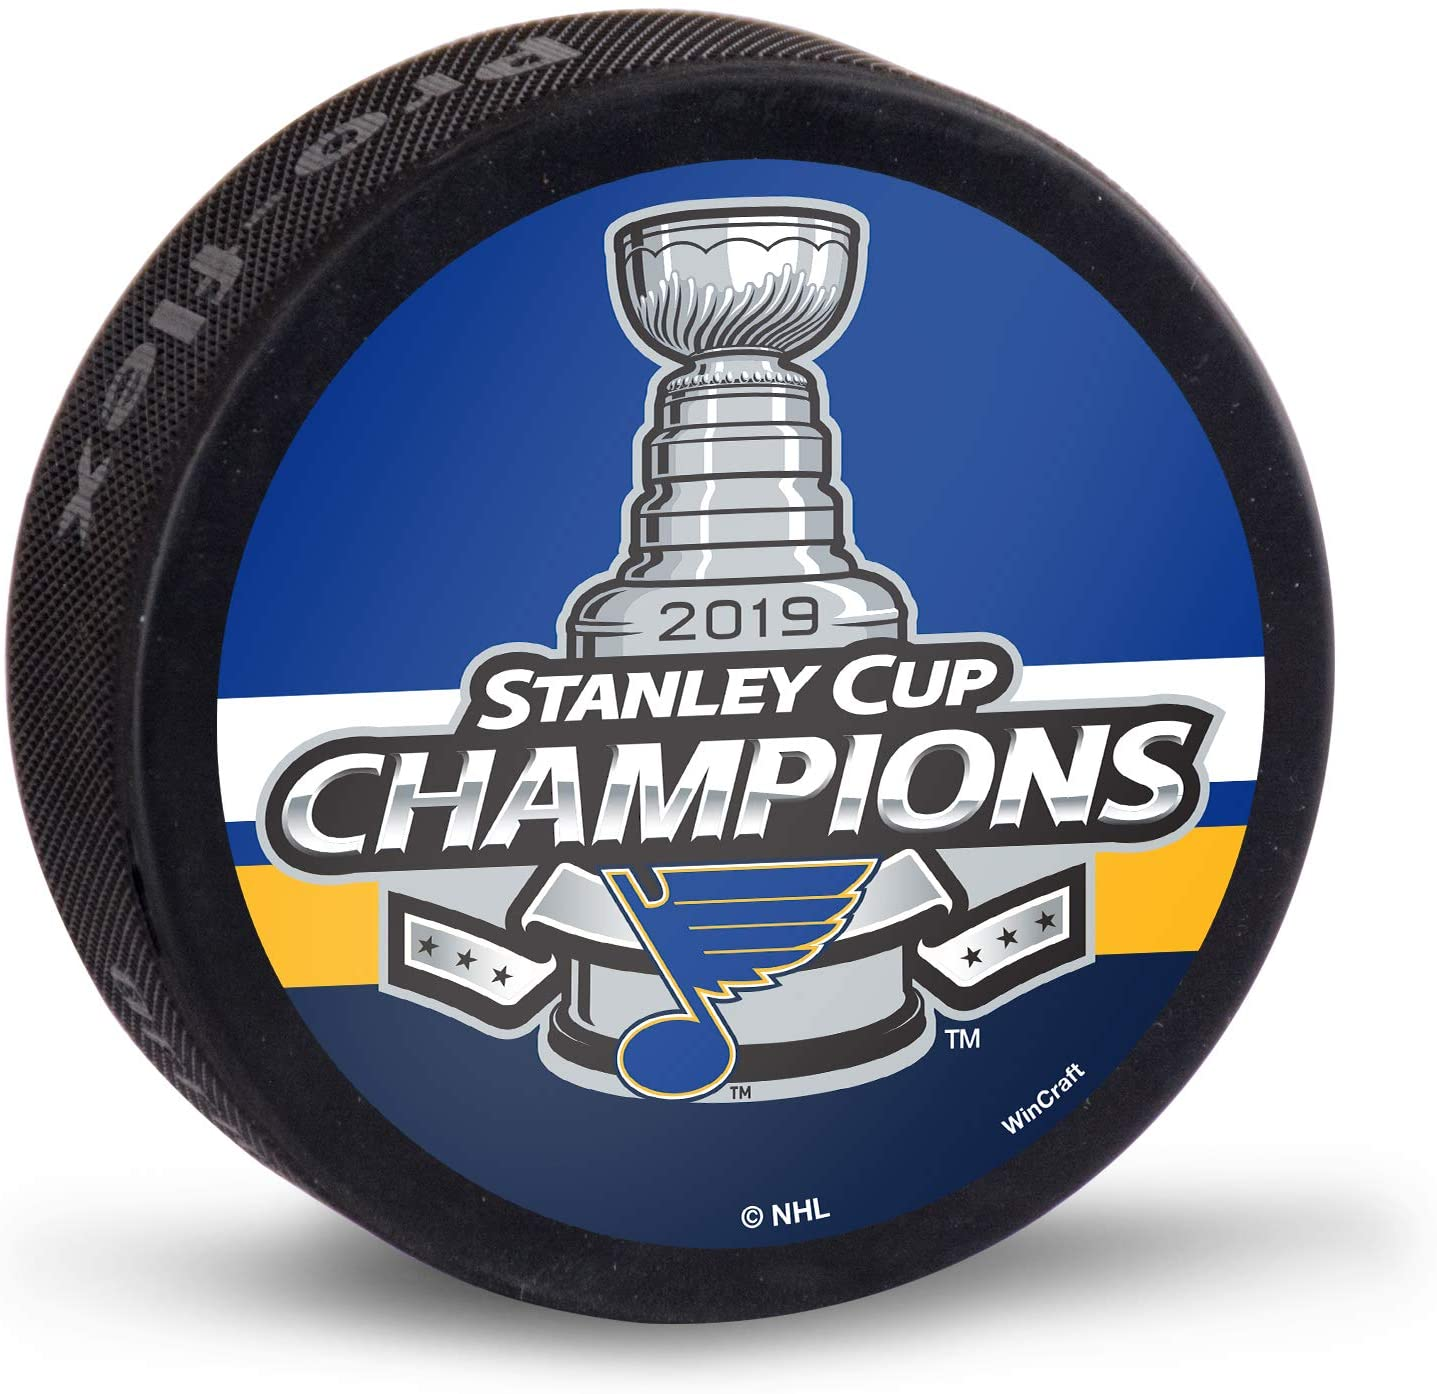 WinCraft St. Louis Blues 2019 Stanley Cup Champions Replica Hockey Puck